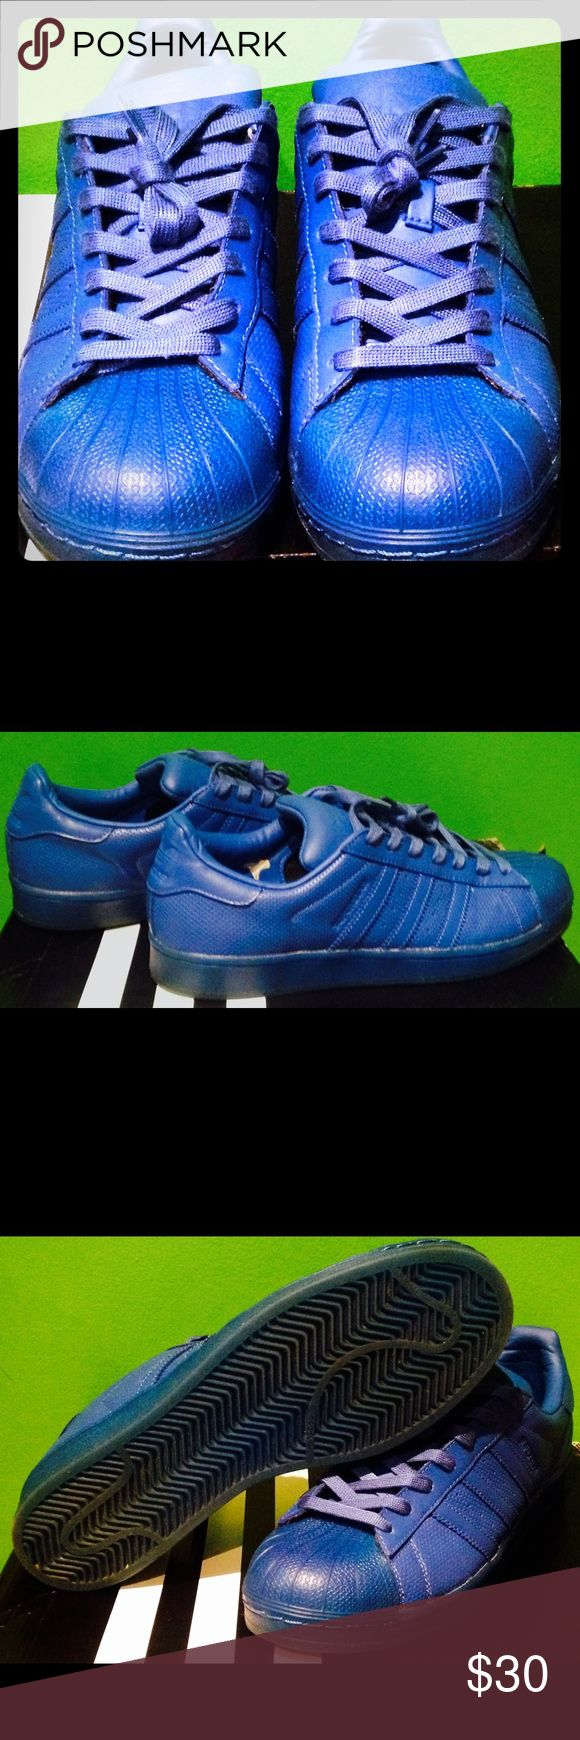 Adidas Blue Shell 🐚 Toes Size 10. Good Condition Adidas Blue Shell 🐚 Toes Size 10. Good Condition. Another great pair of #CoolUsedShoes adidas Shoes Sneakers